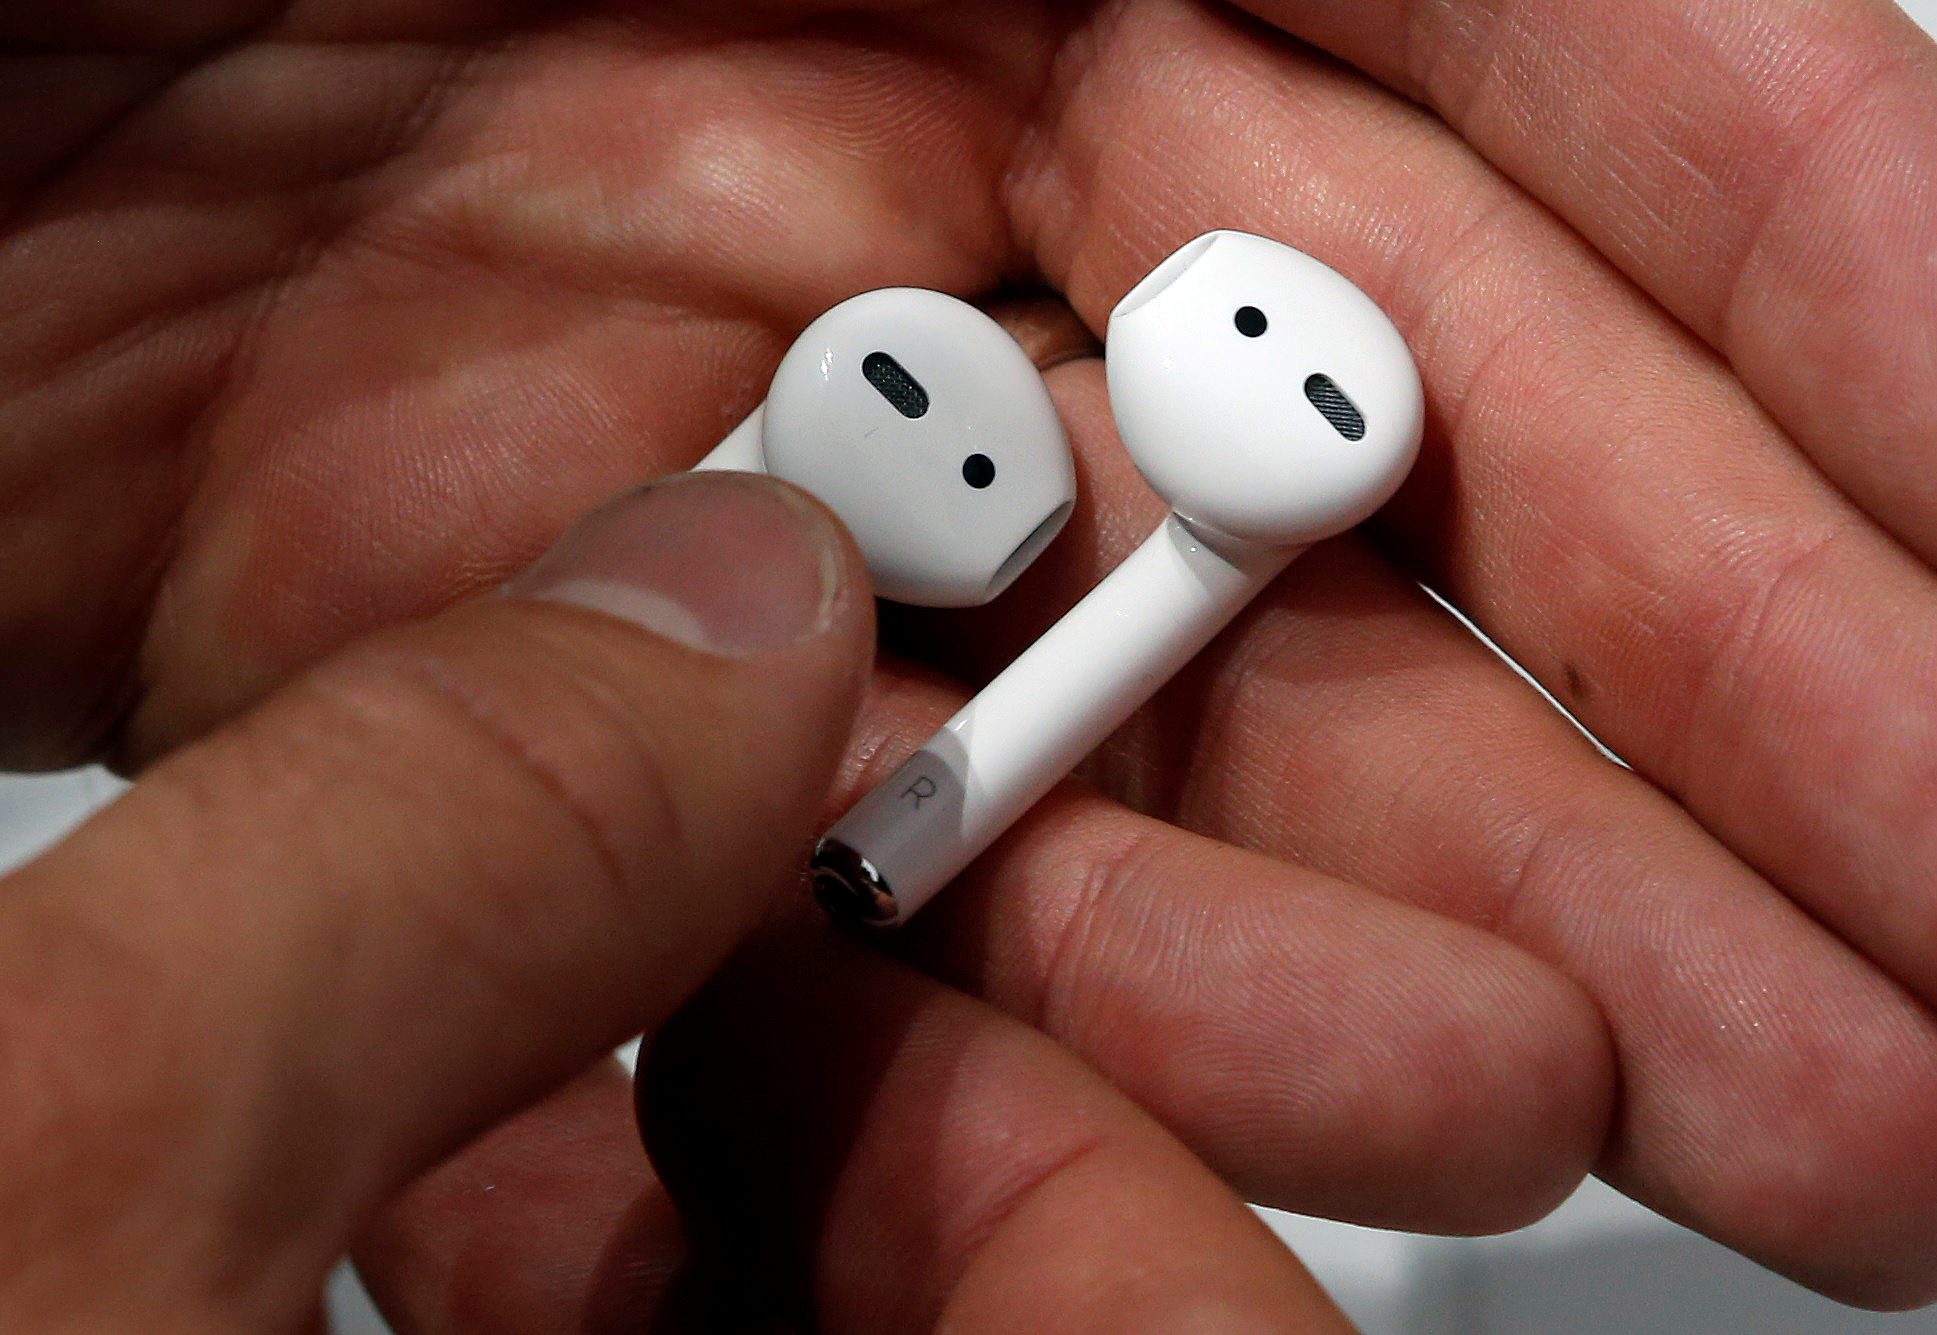 Apple AirPods are displayed during a media event in San Francisco, California, U.S. September 7, 2016.  REUTERS/Beck Diefenbach/File Photo - S1AEUJHRVQAB